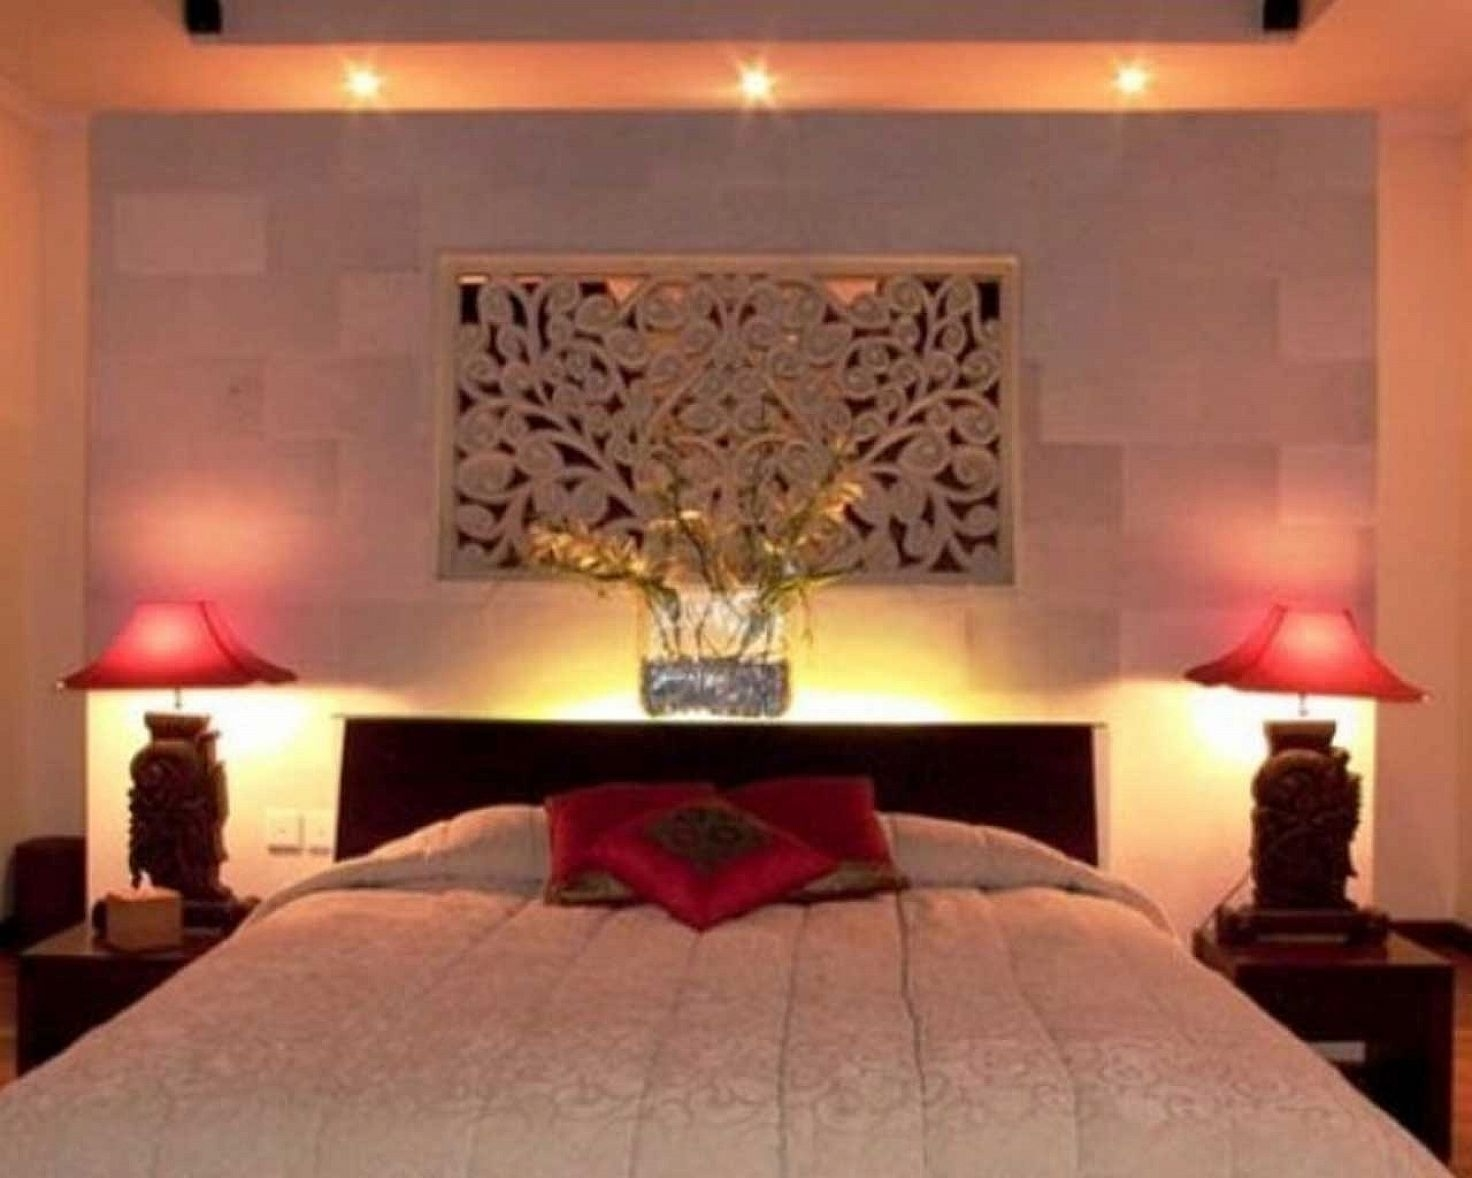 Modern Bedroom Lights, Modern Bedroom Ceiling Lighting Ideas Home inside How to Decorate Modern Bedroom with Lighting Design Ideas - modern bedroom with lighting